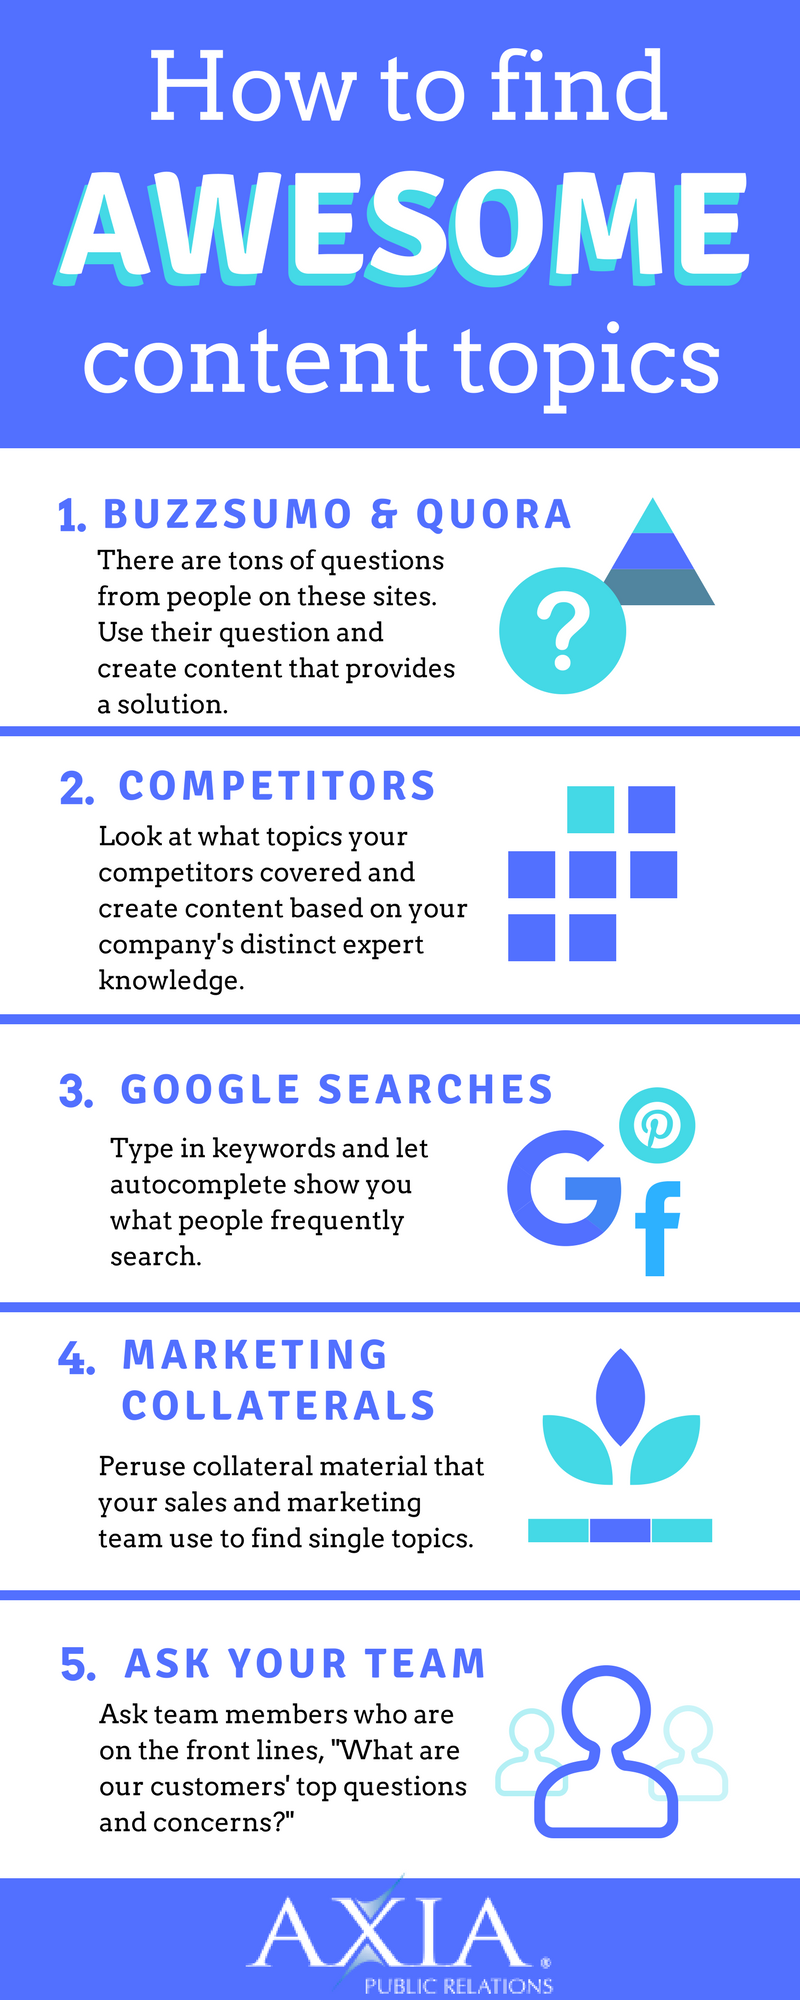 201706 Content Topics infographic-1.png